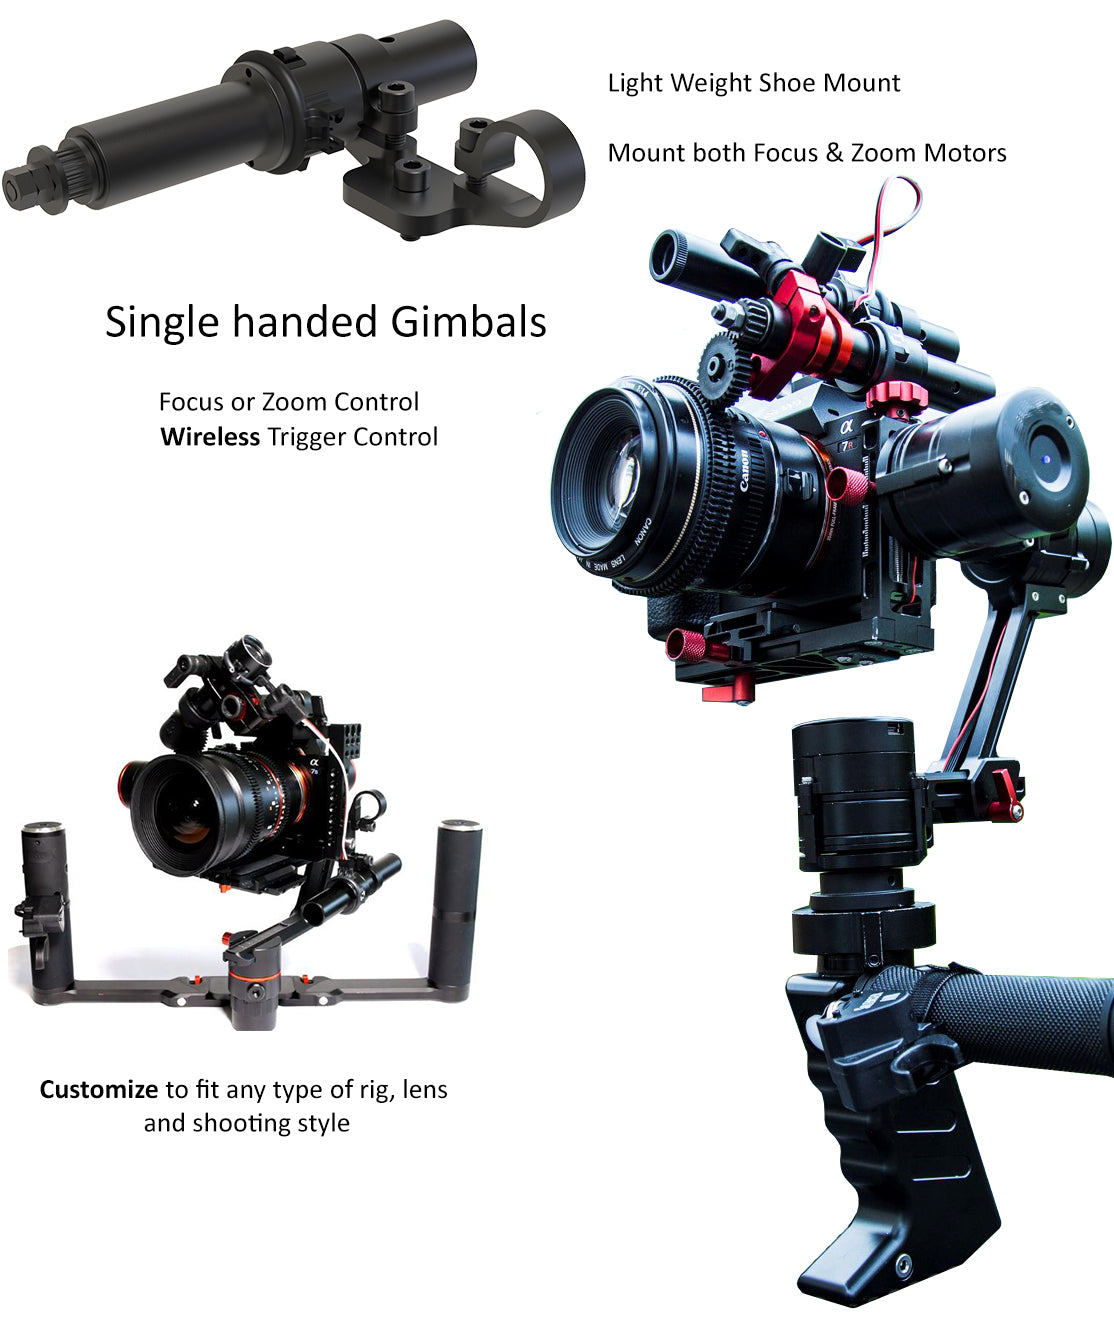 Single Handed Gimbals, Focus or Zoom Controller